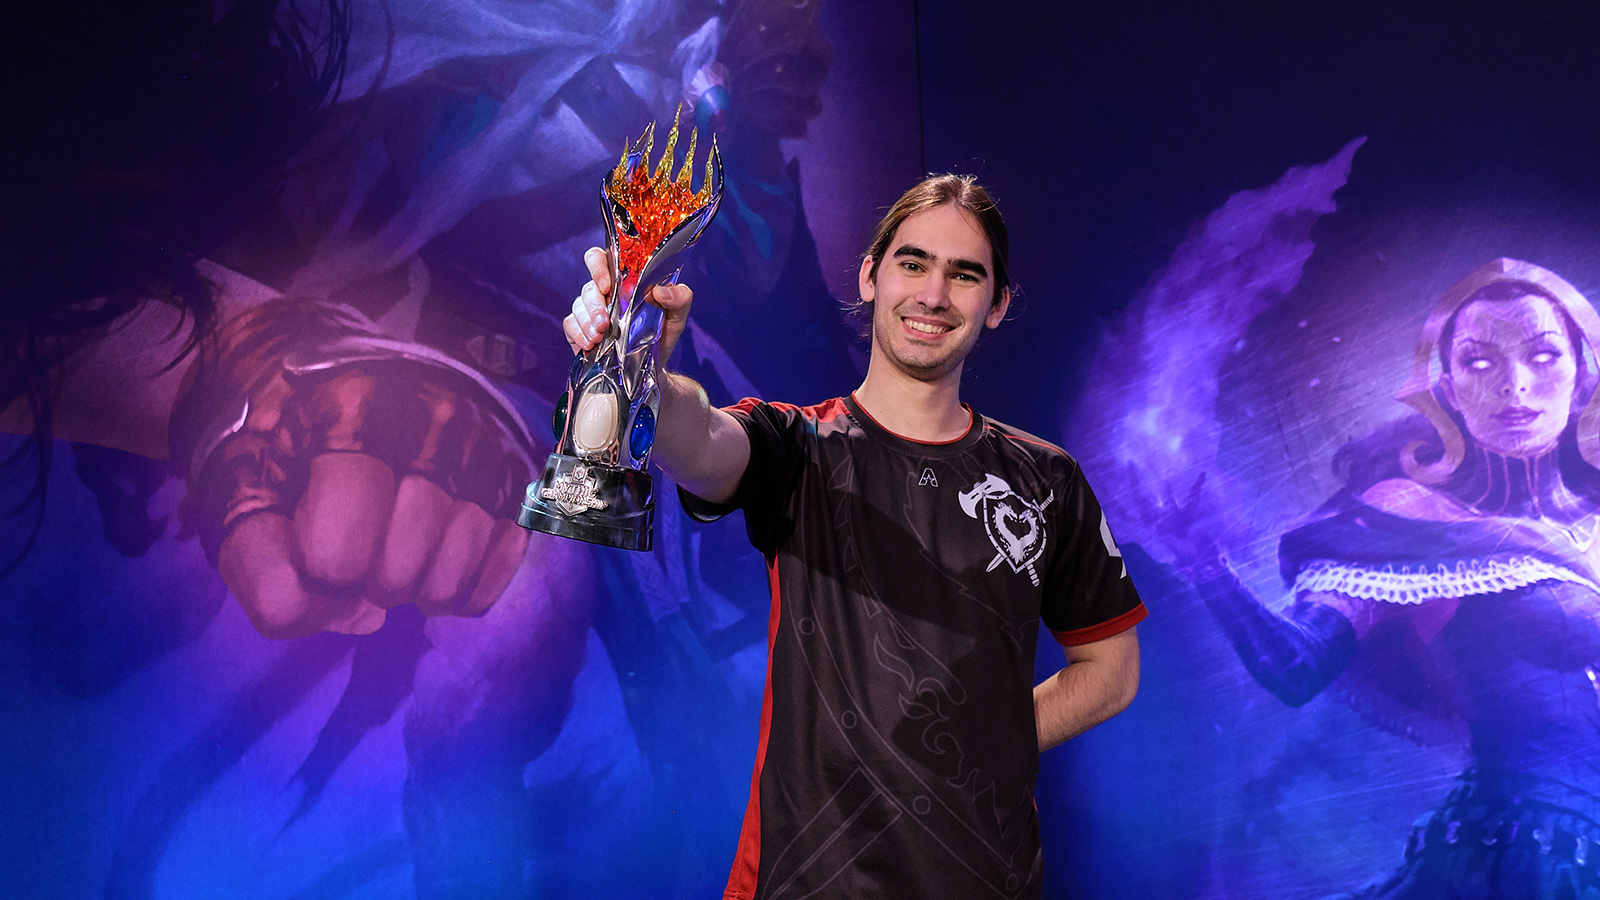 Top 8 e Campeão do 2º Mythic Championship